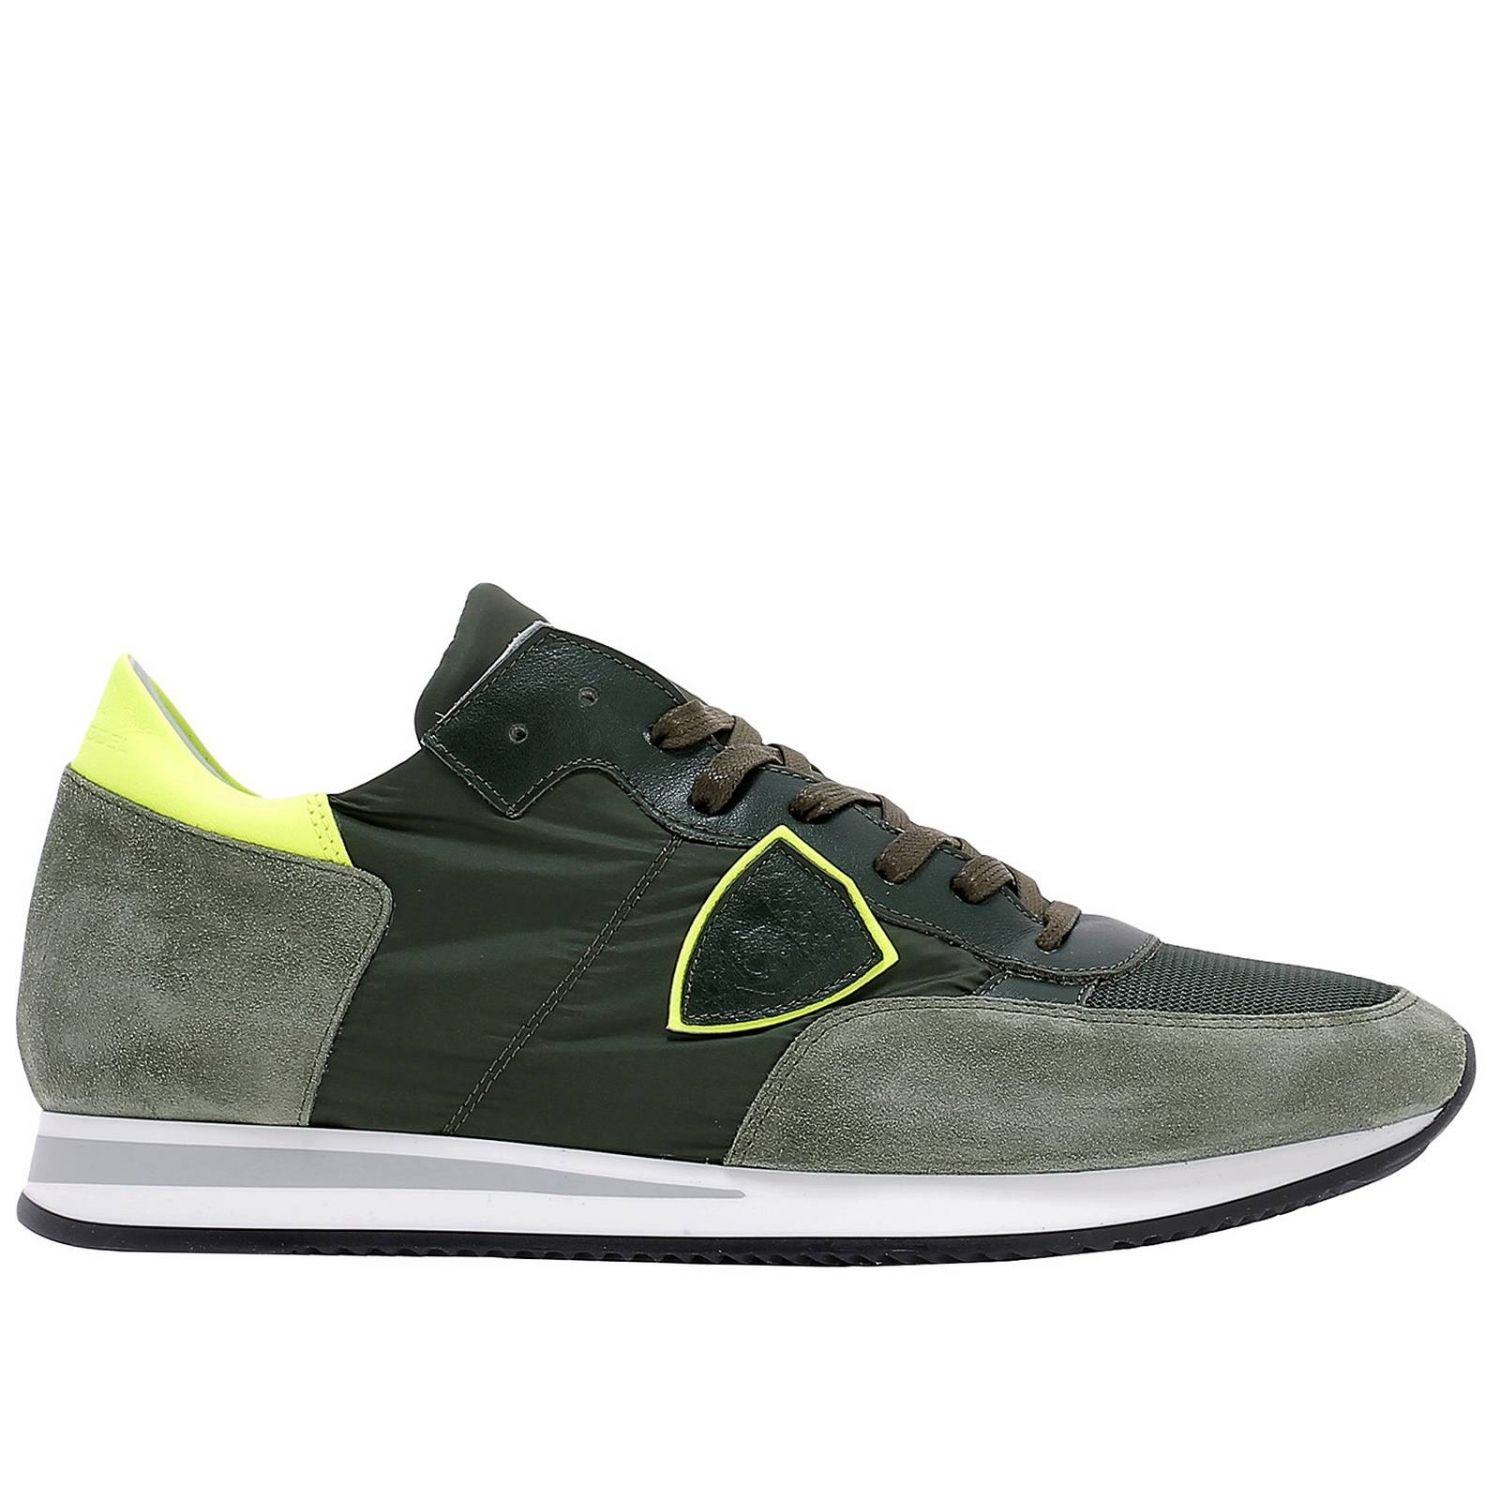 Baskets Philippe Model: Chaussures homme Philippe Model vert acide 1